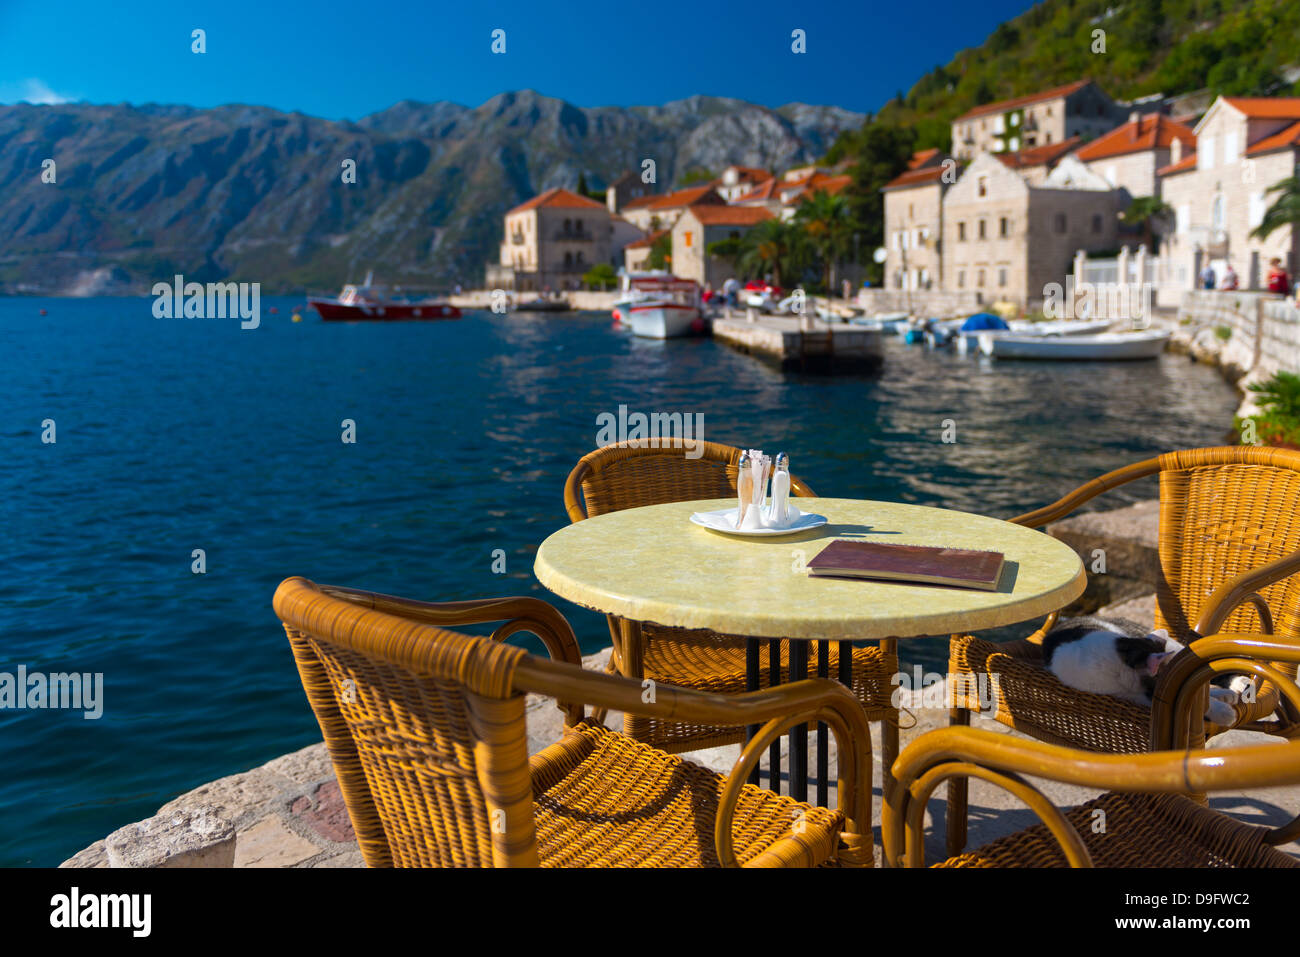 Montenegro, Bay of Kotor, Perast, Waterside Cafe - Stock Image